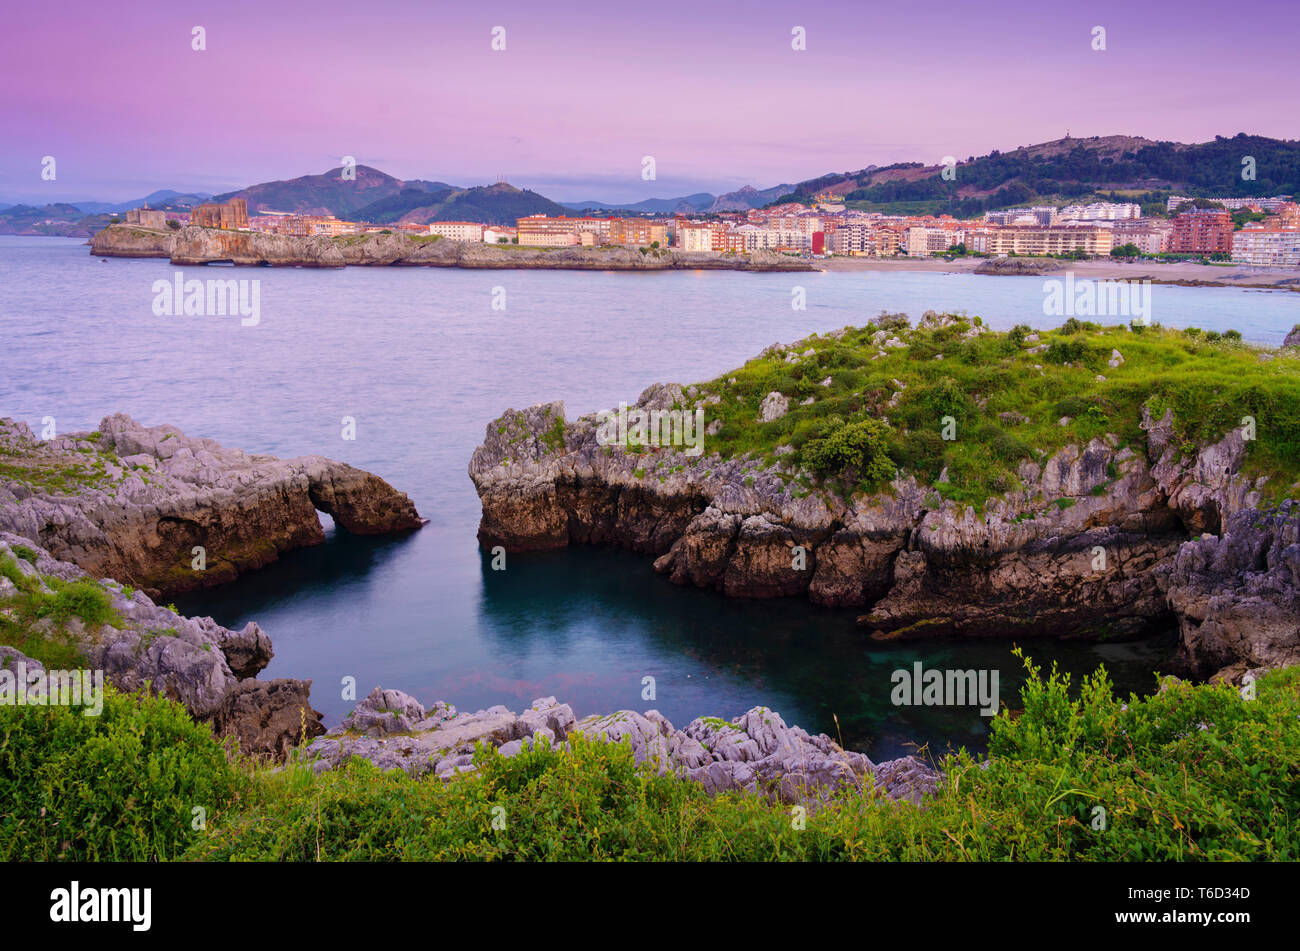 Spain, Cantabria, Castro-Urdiales, view of town and horseshoe cove at dusk Stock Photo